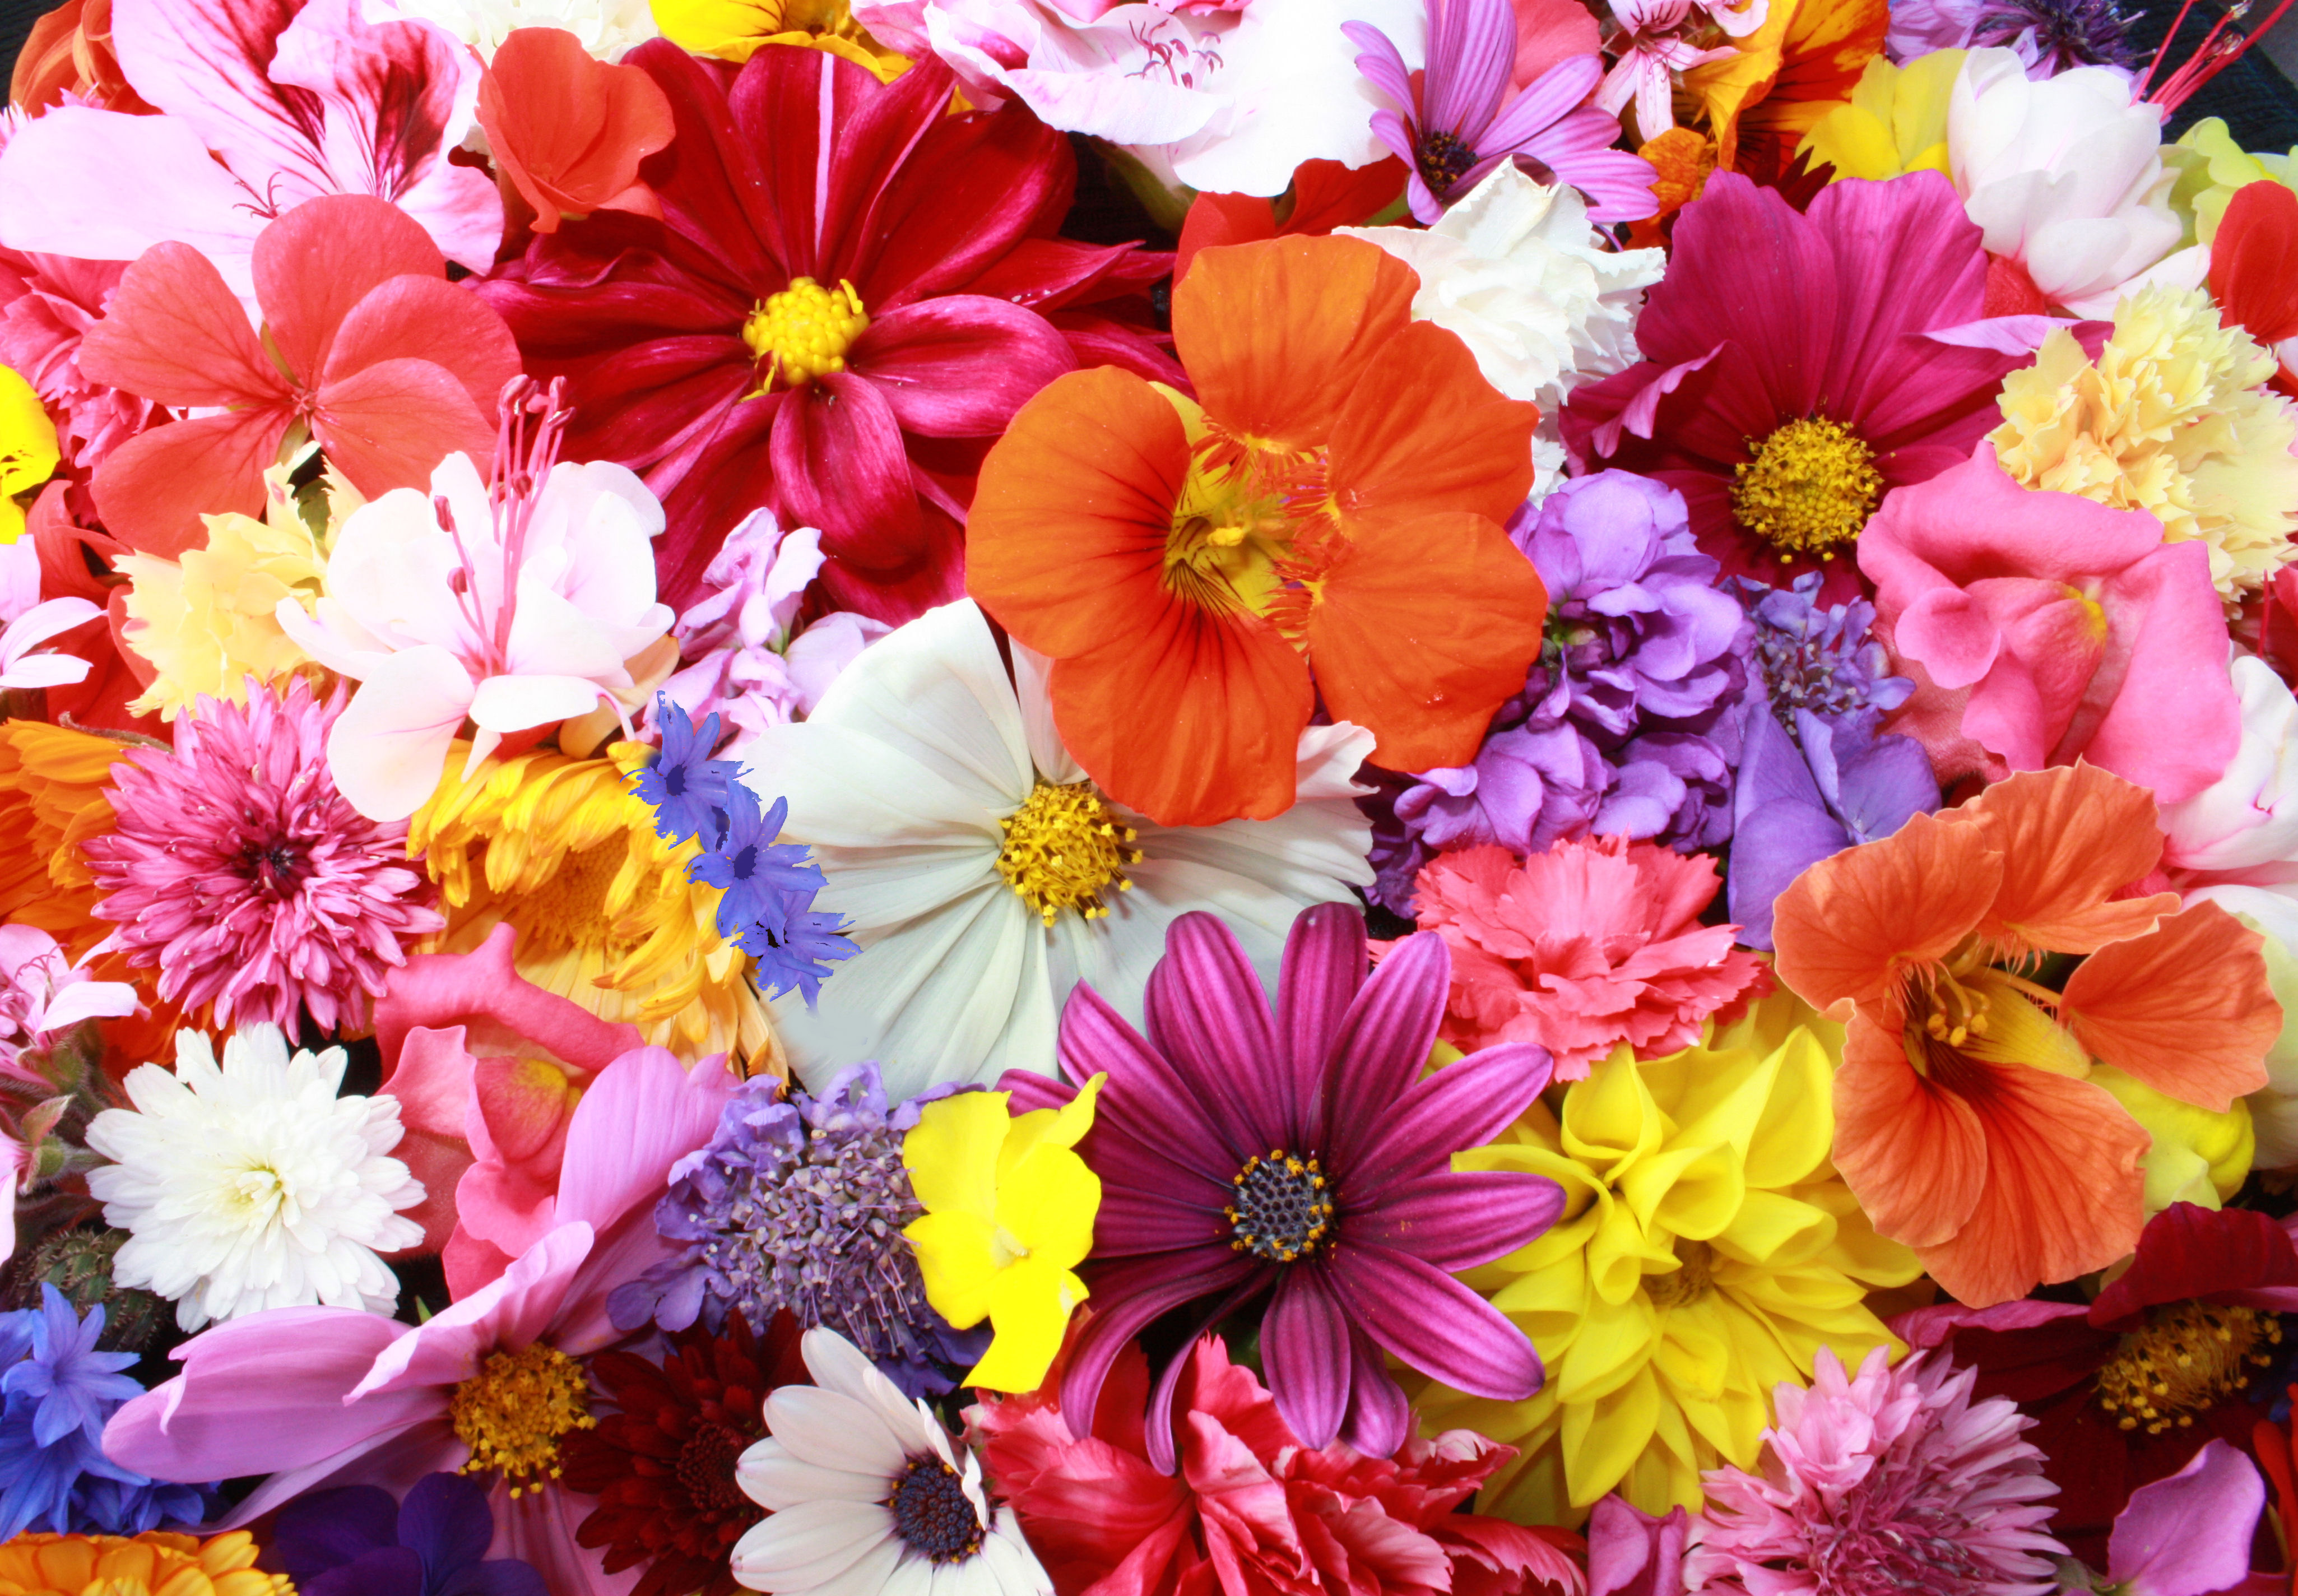 Flowers and Their Meanings in Dreams.